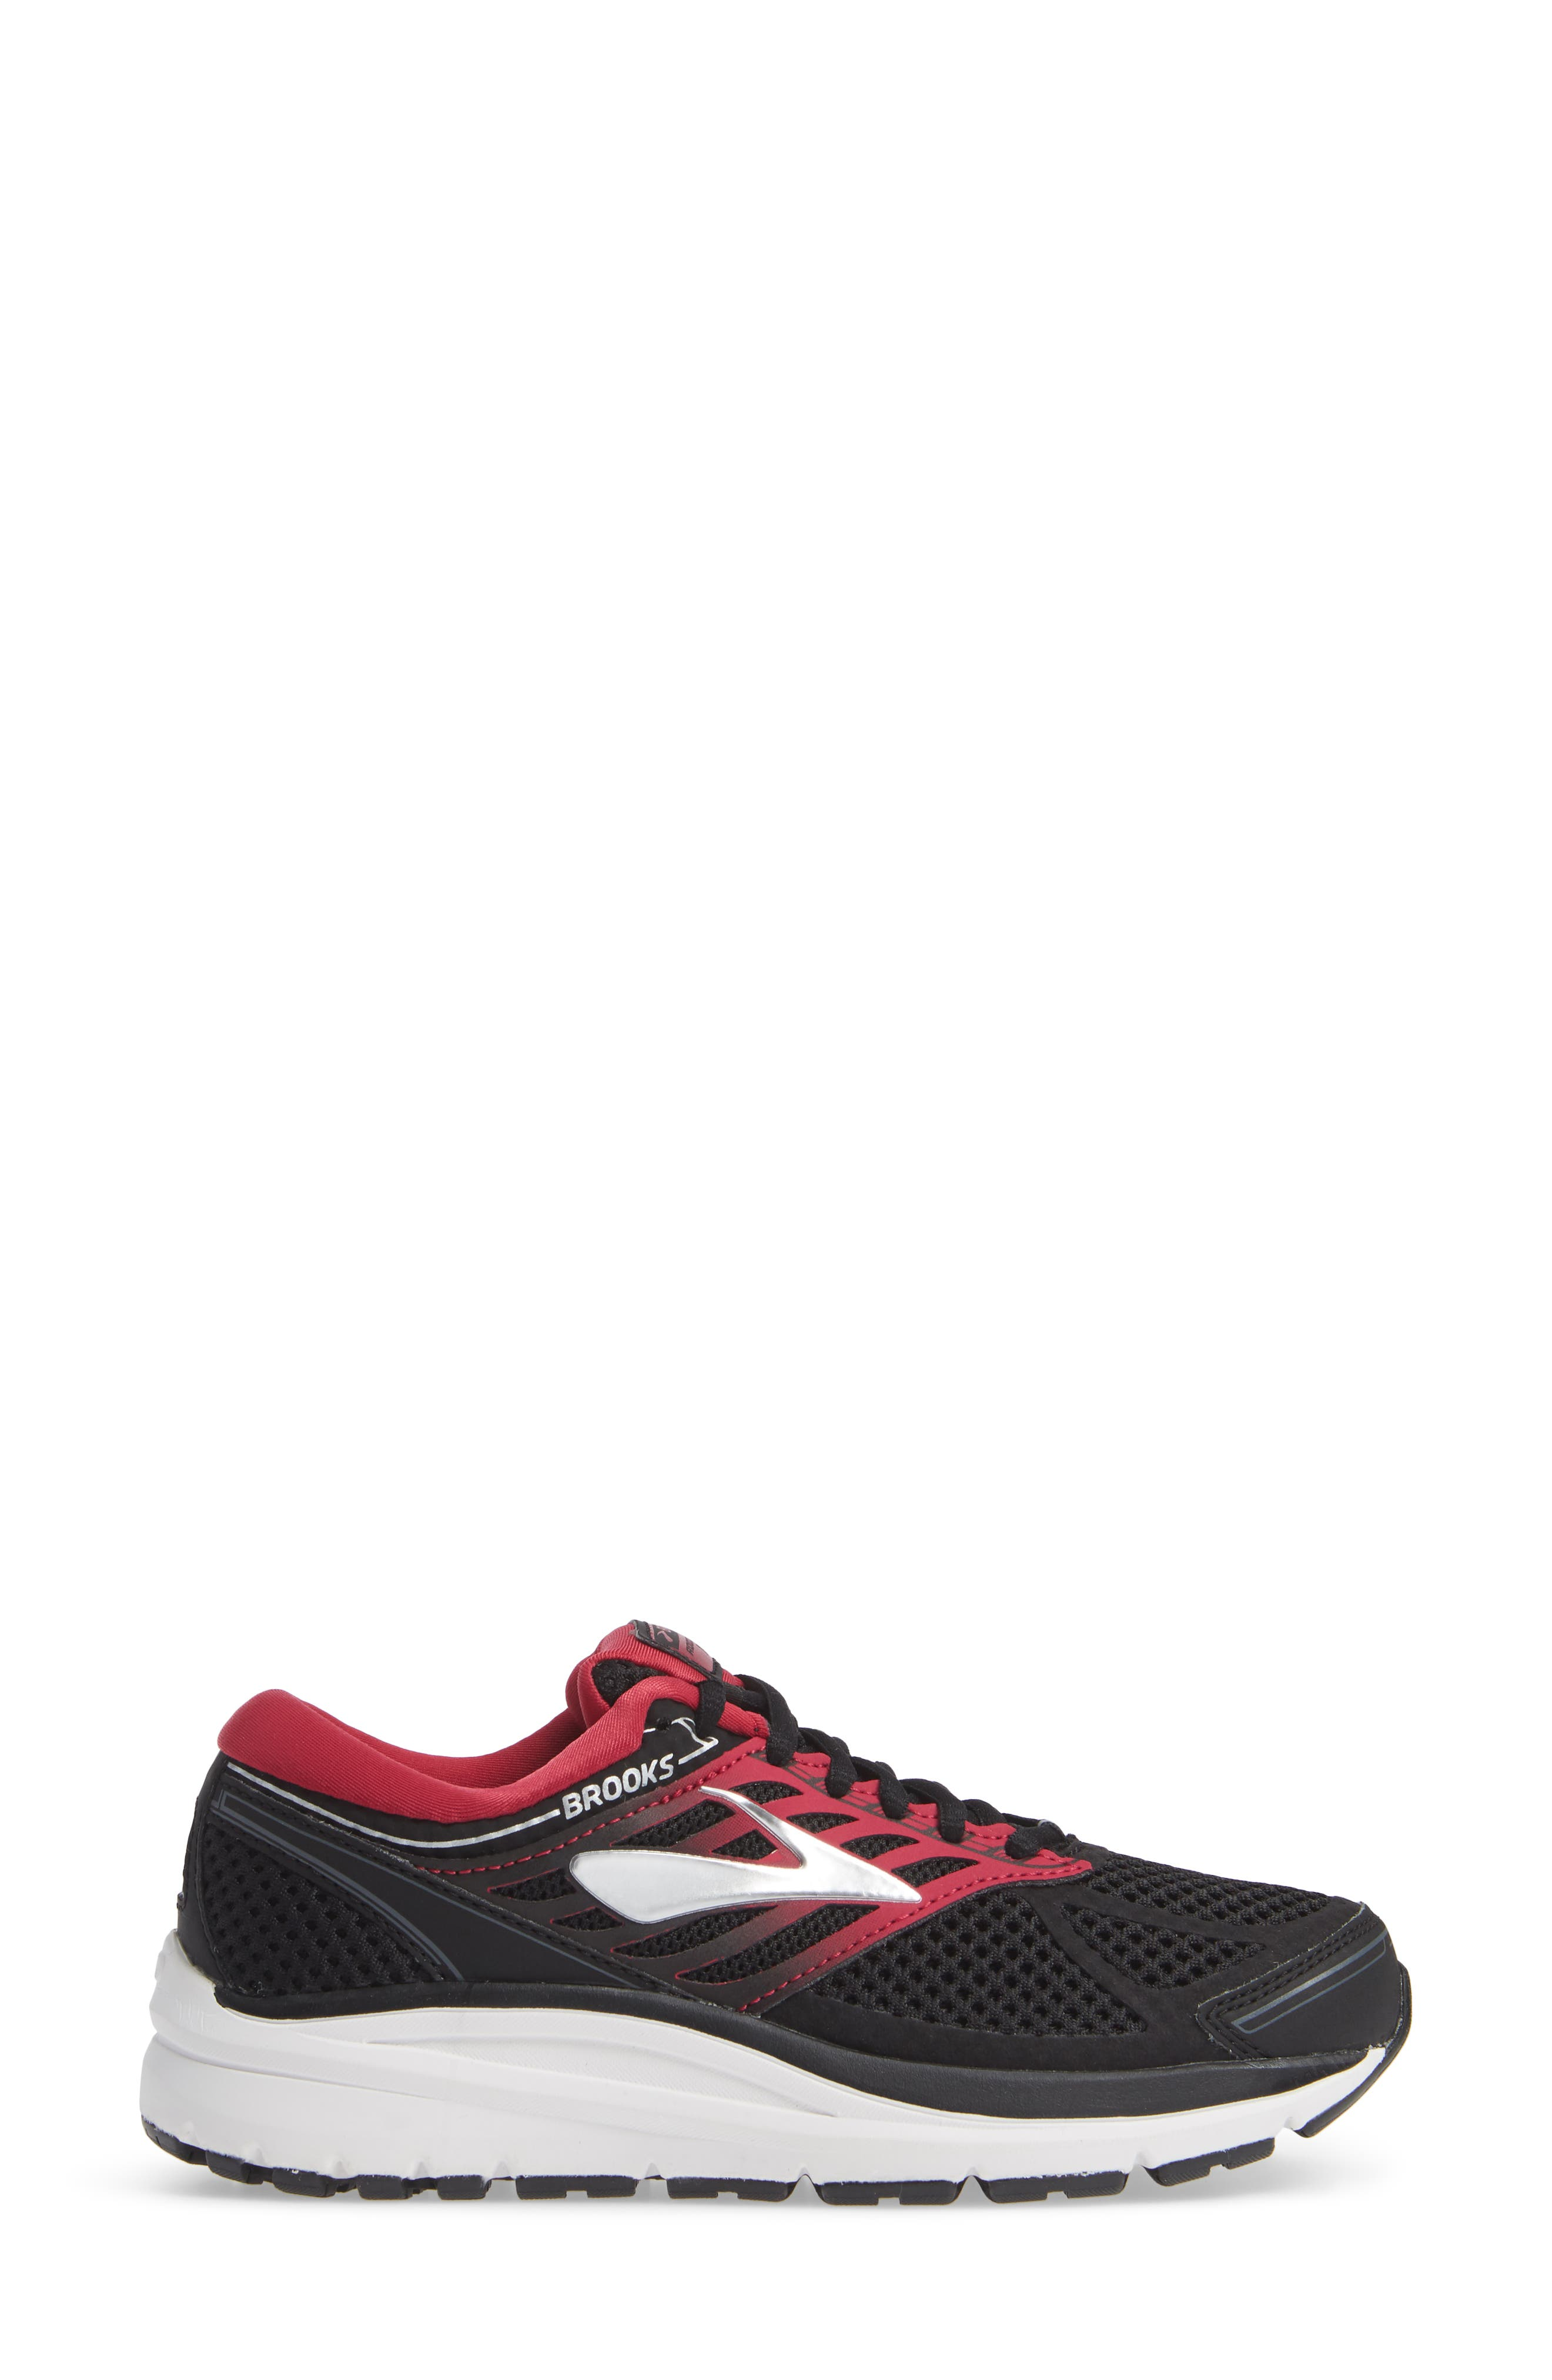 Addiction 13 Running Shoe,                             Alternate thumbnail 3, color,                             BLACK/ PINK/ GREY